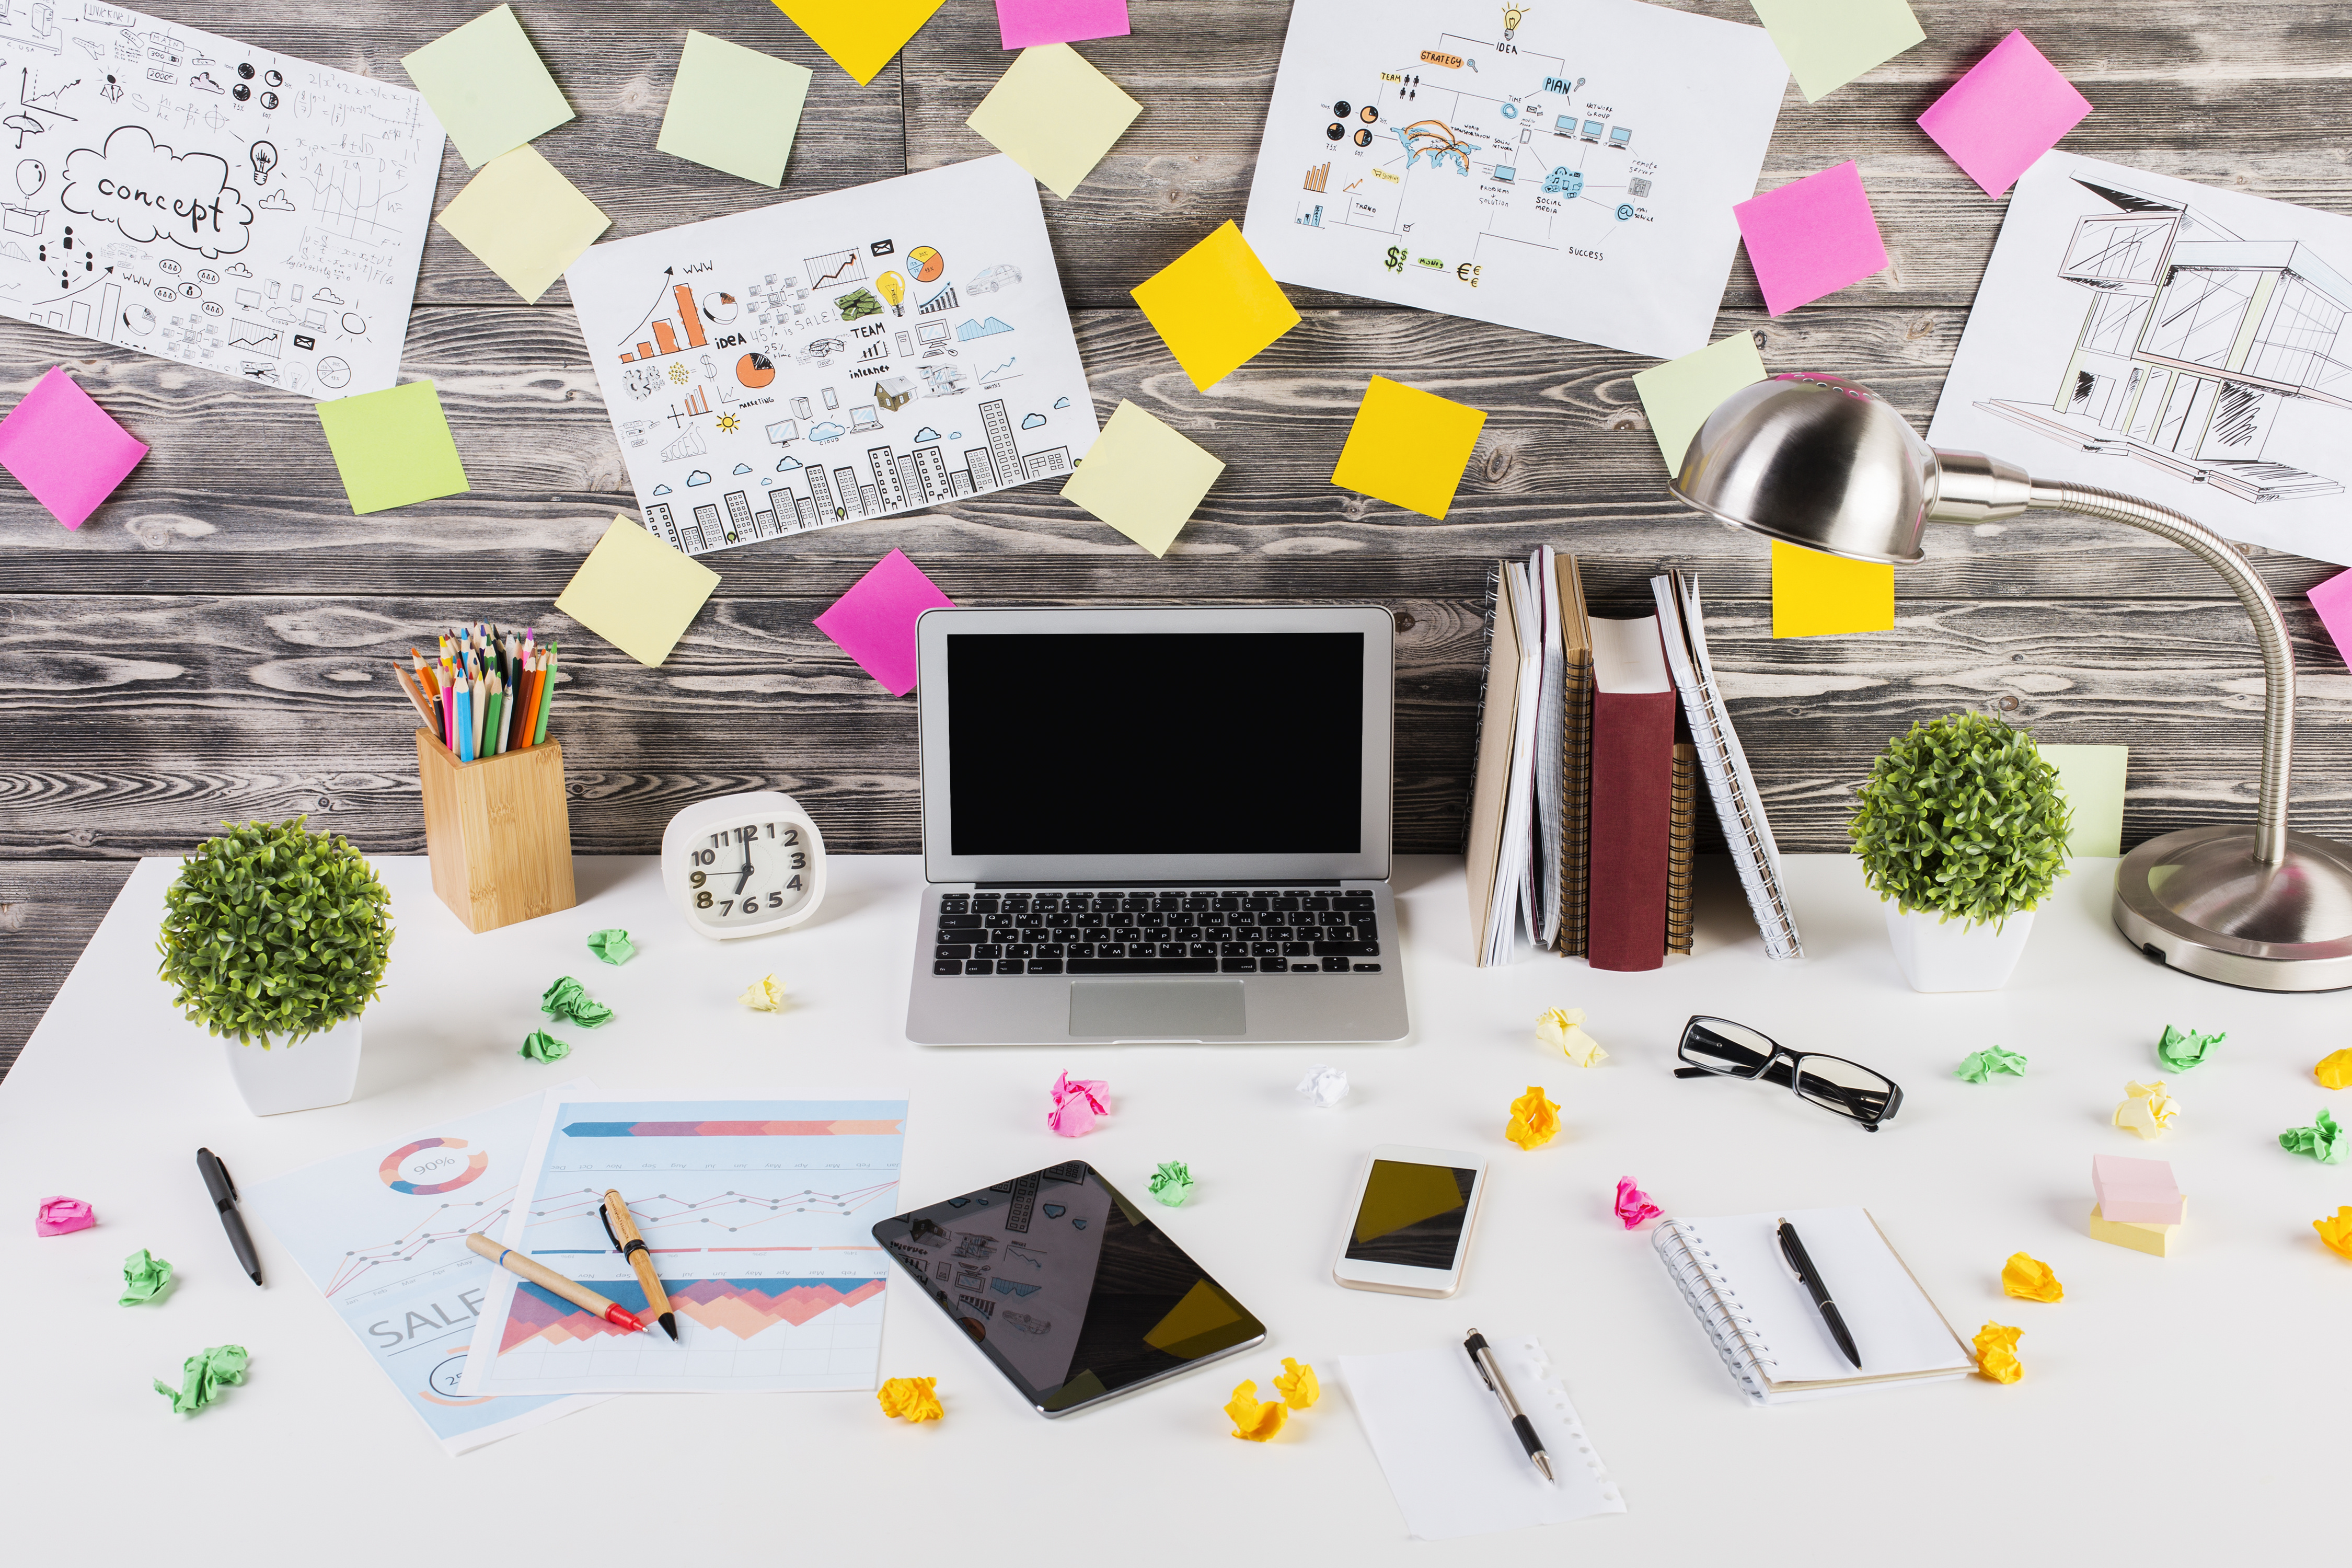 Closeup of modern messy workplace with blank electronic devices, colorful crumpled paper balls, decorative plants, financial reports, creative sketches and other items. Mock up